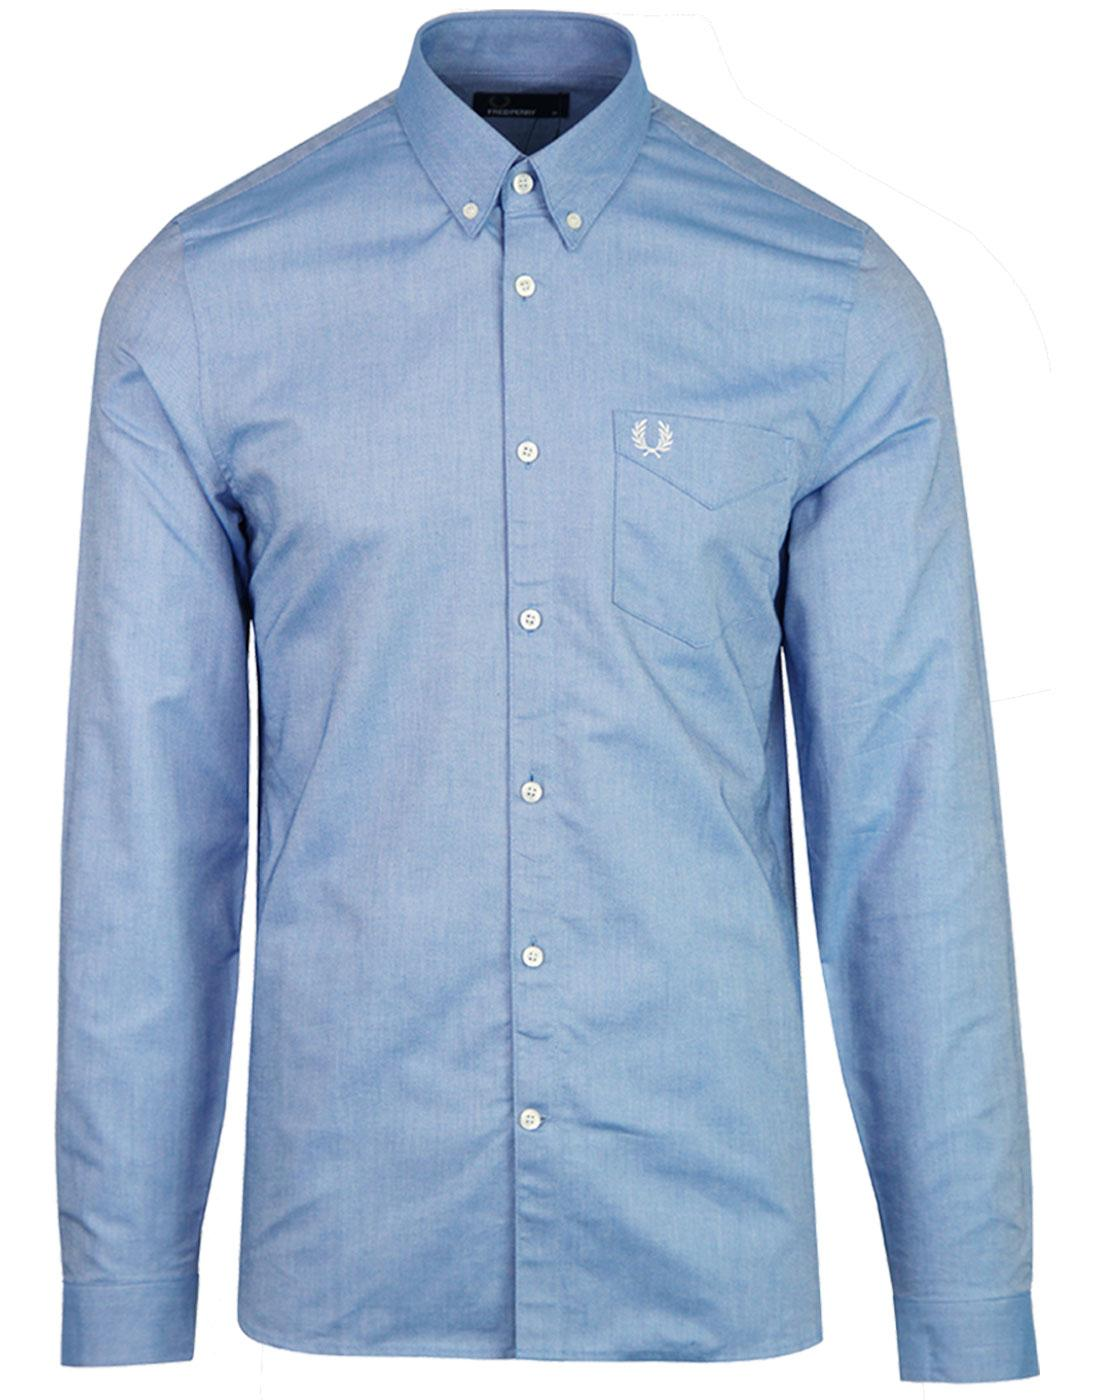 M3551 FRED PERRY CLASSIC OXFORD SHIRT MID BLUE